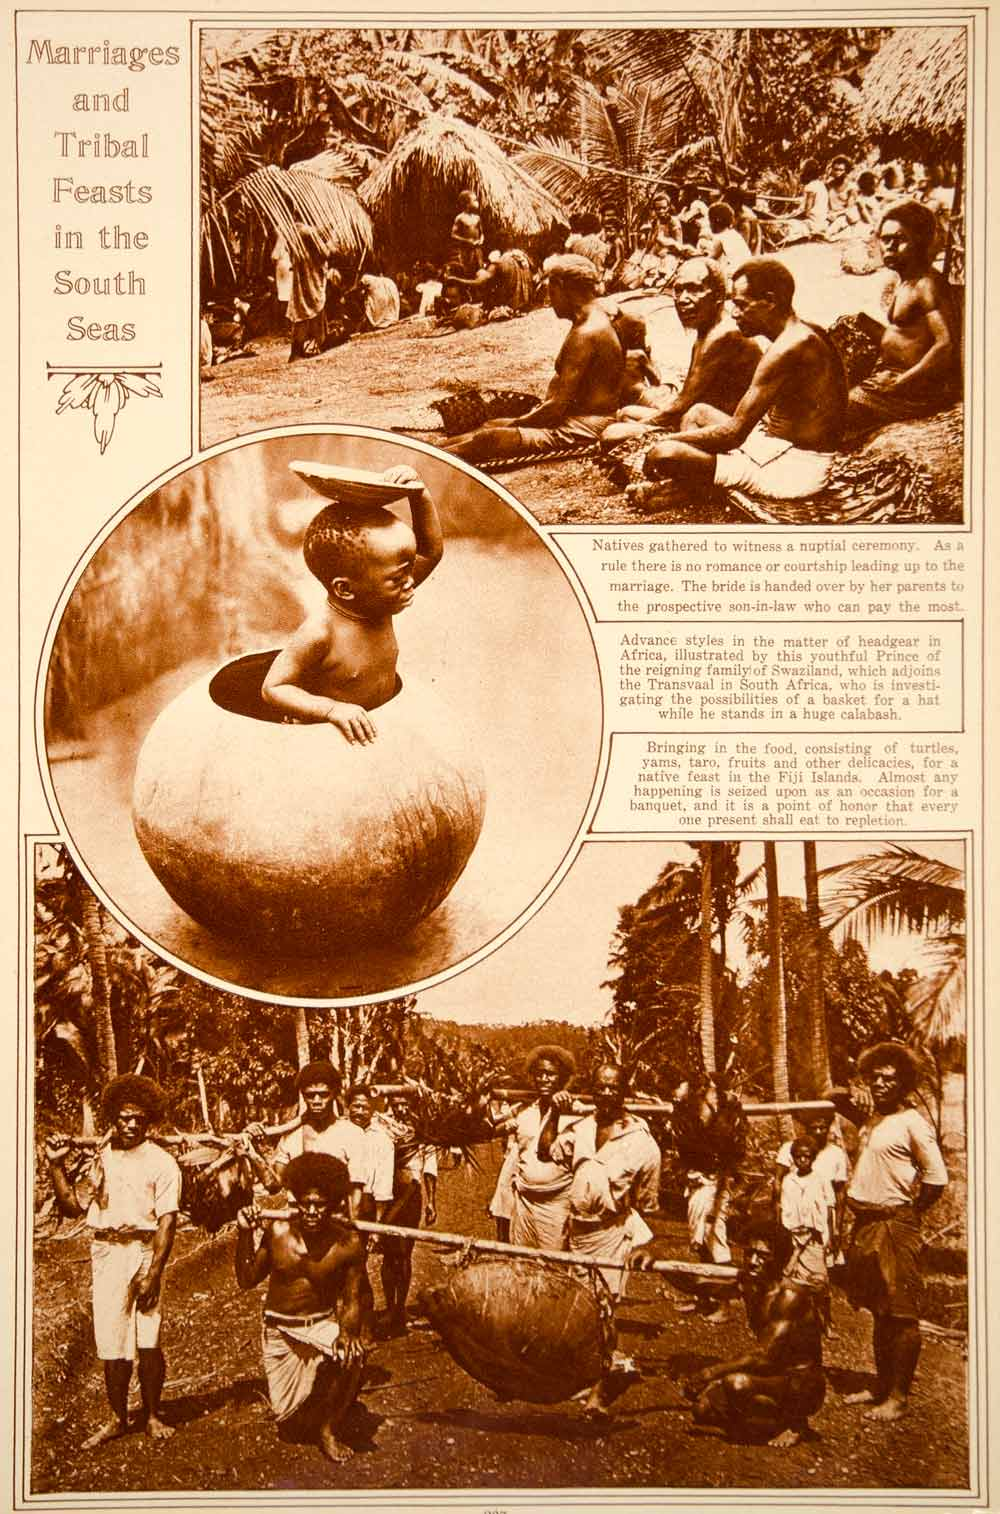 1923 Rotogravure South Seas Ethnic People Marriage Ceremony Feast Fiji Islands